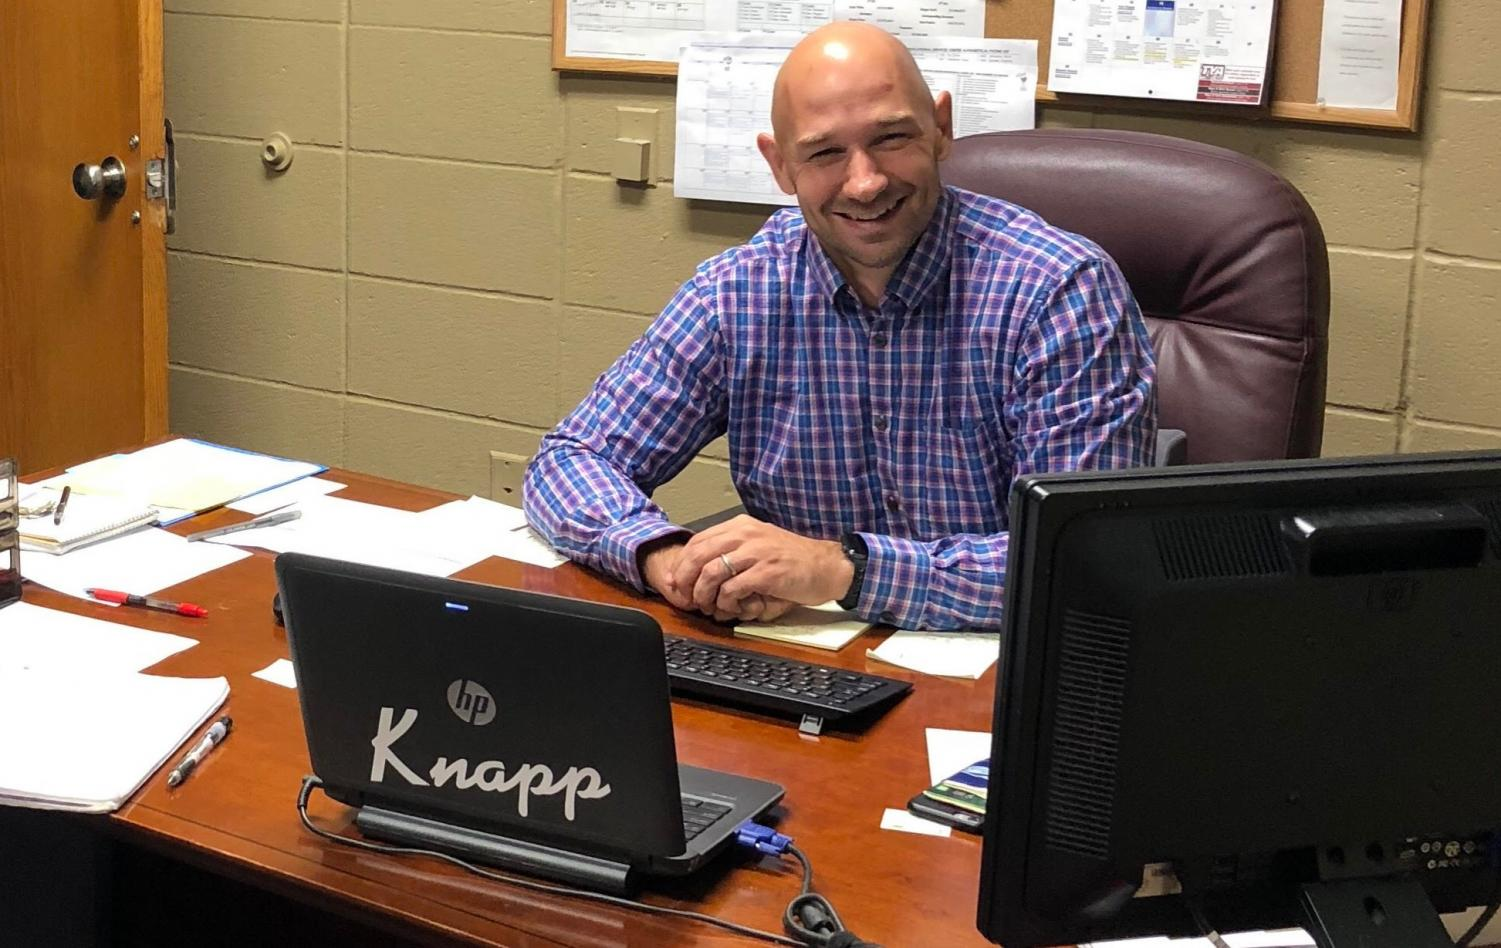 MULLING OVER HIS NEW SCHOOL: Mr. Stefan Muller ease into his new position as principal at Knapp Elementary School